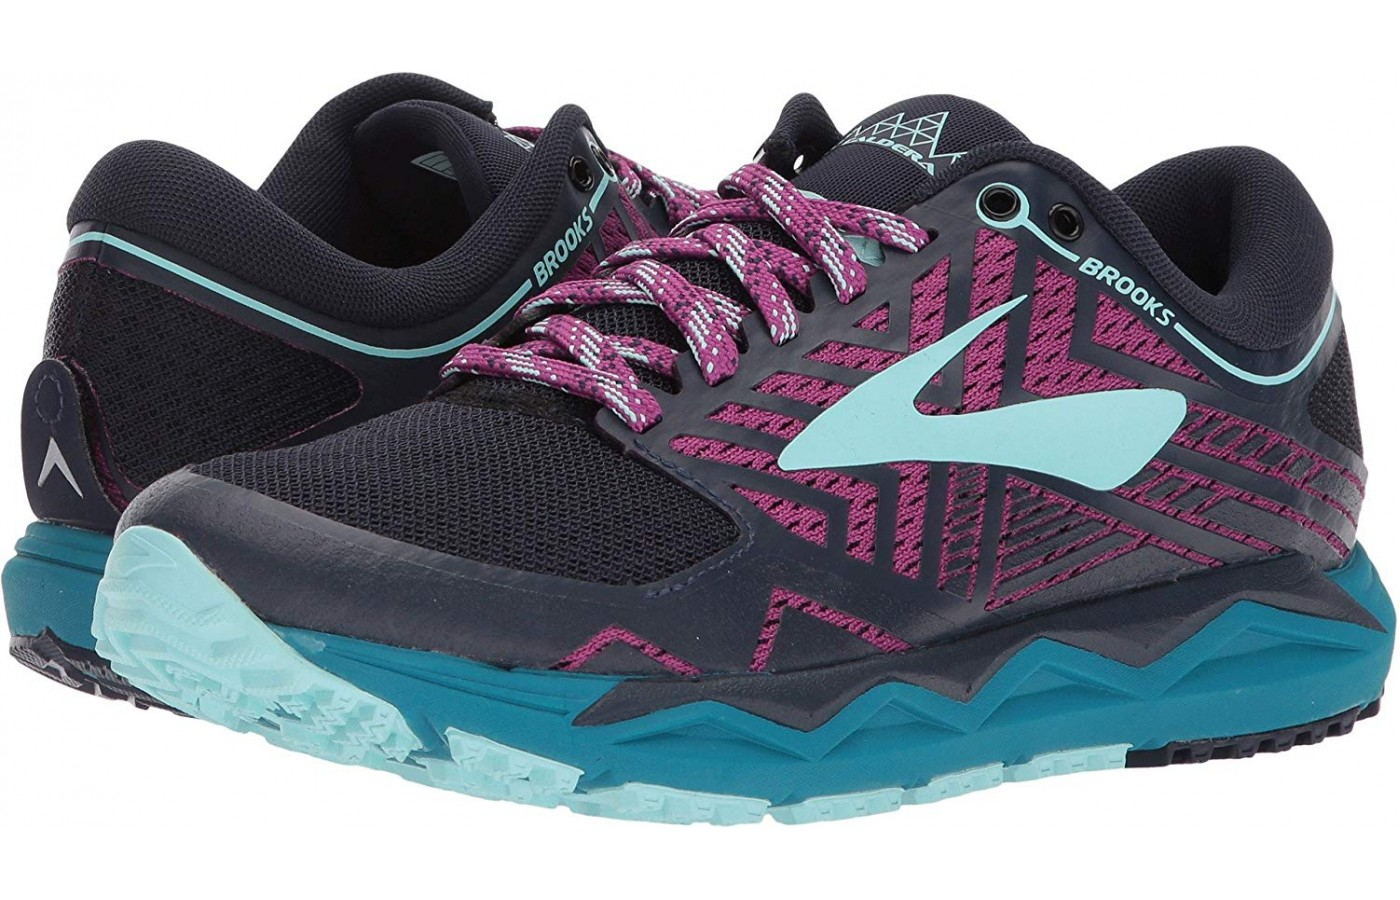 Caldera 2 strikes an ideal balance between breathable comfort and durable protection that athletes look for in footwear.